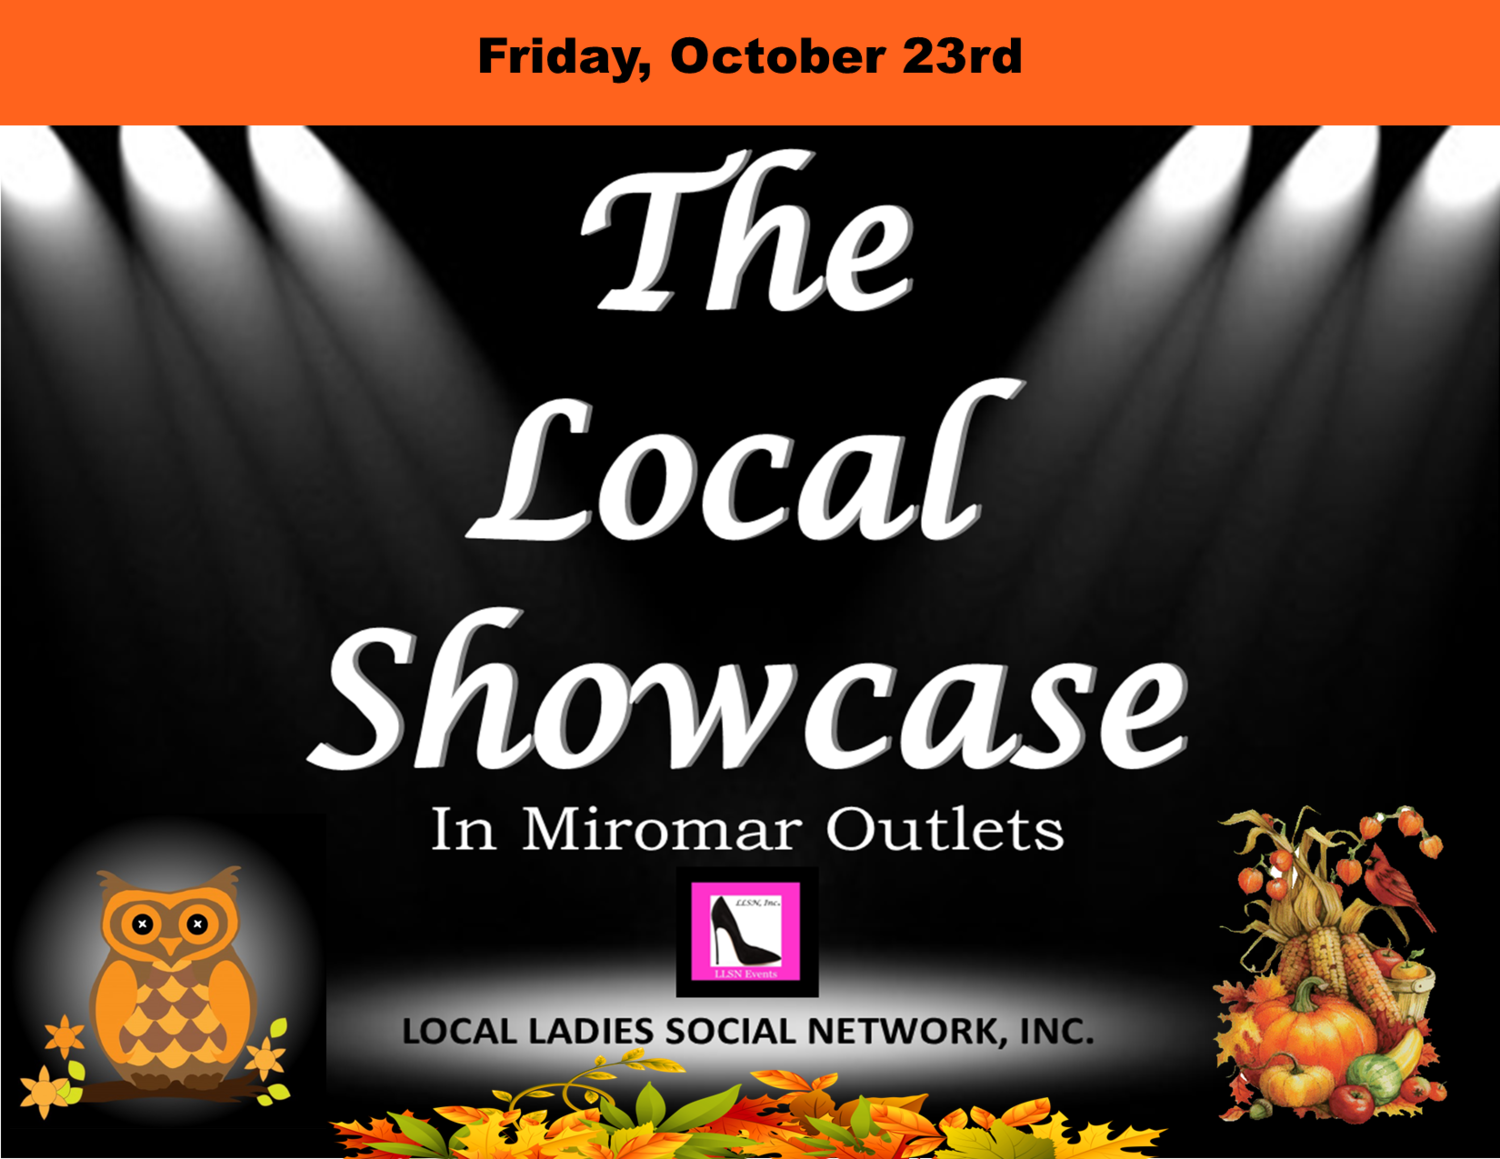 Friday, October 23rd 11am-7pm